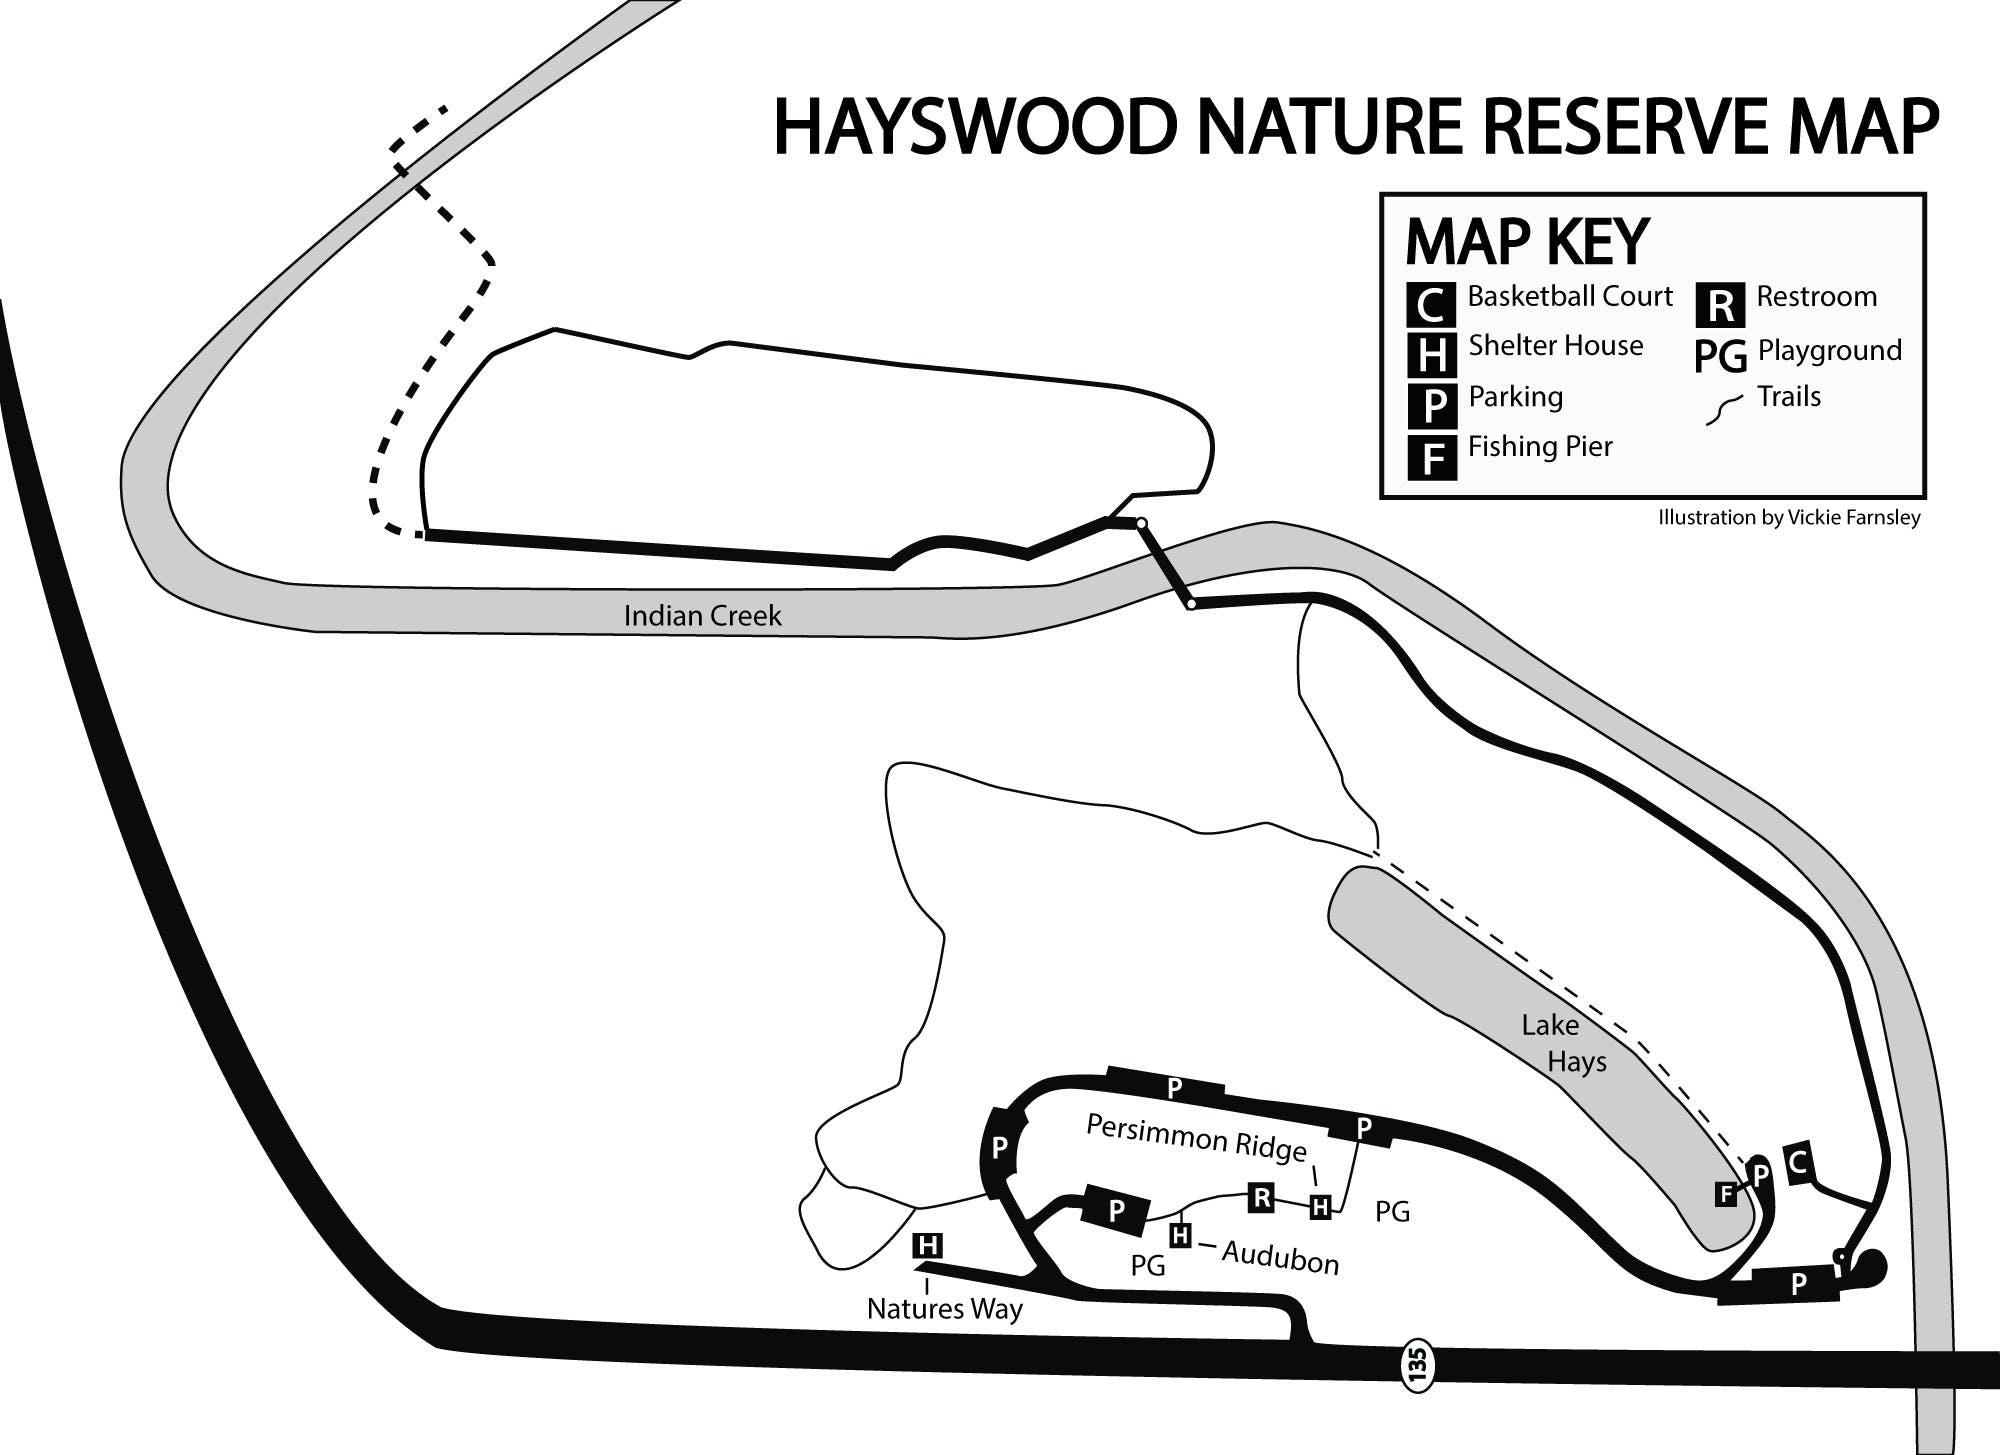 Hayswood Nature Reserve Park Map